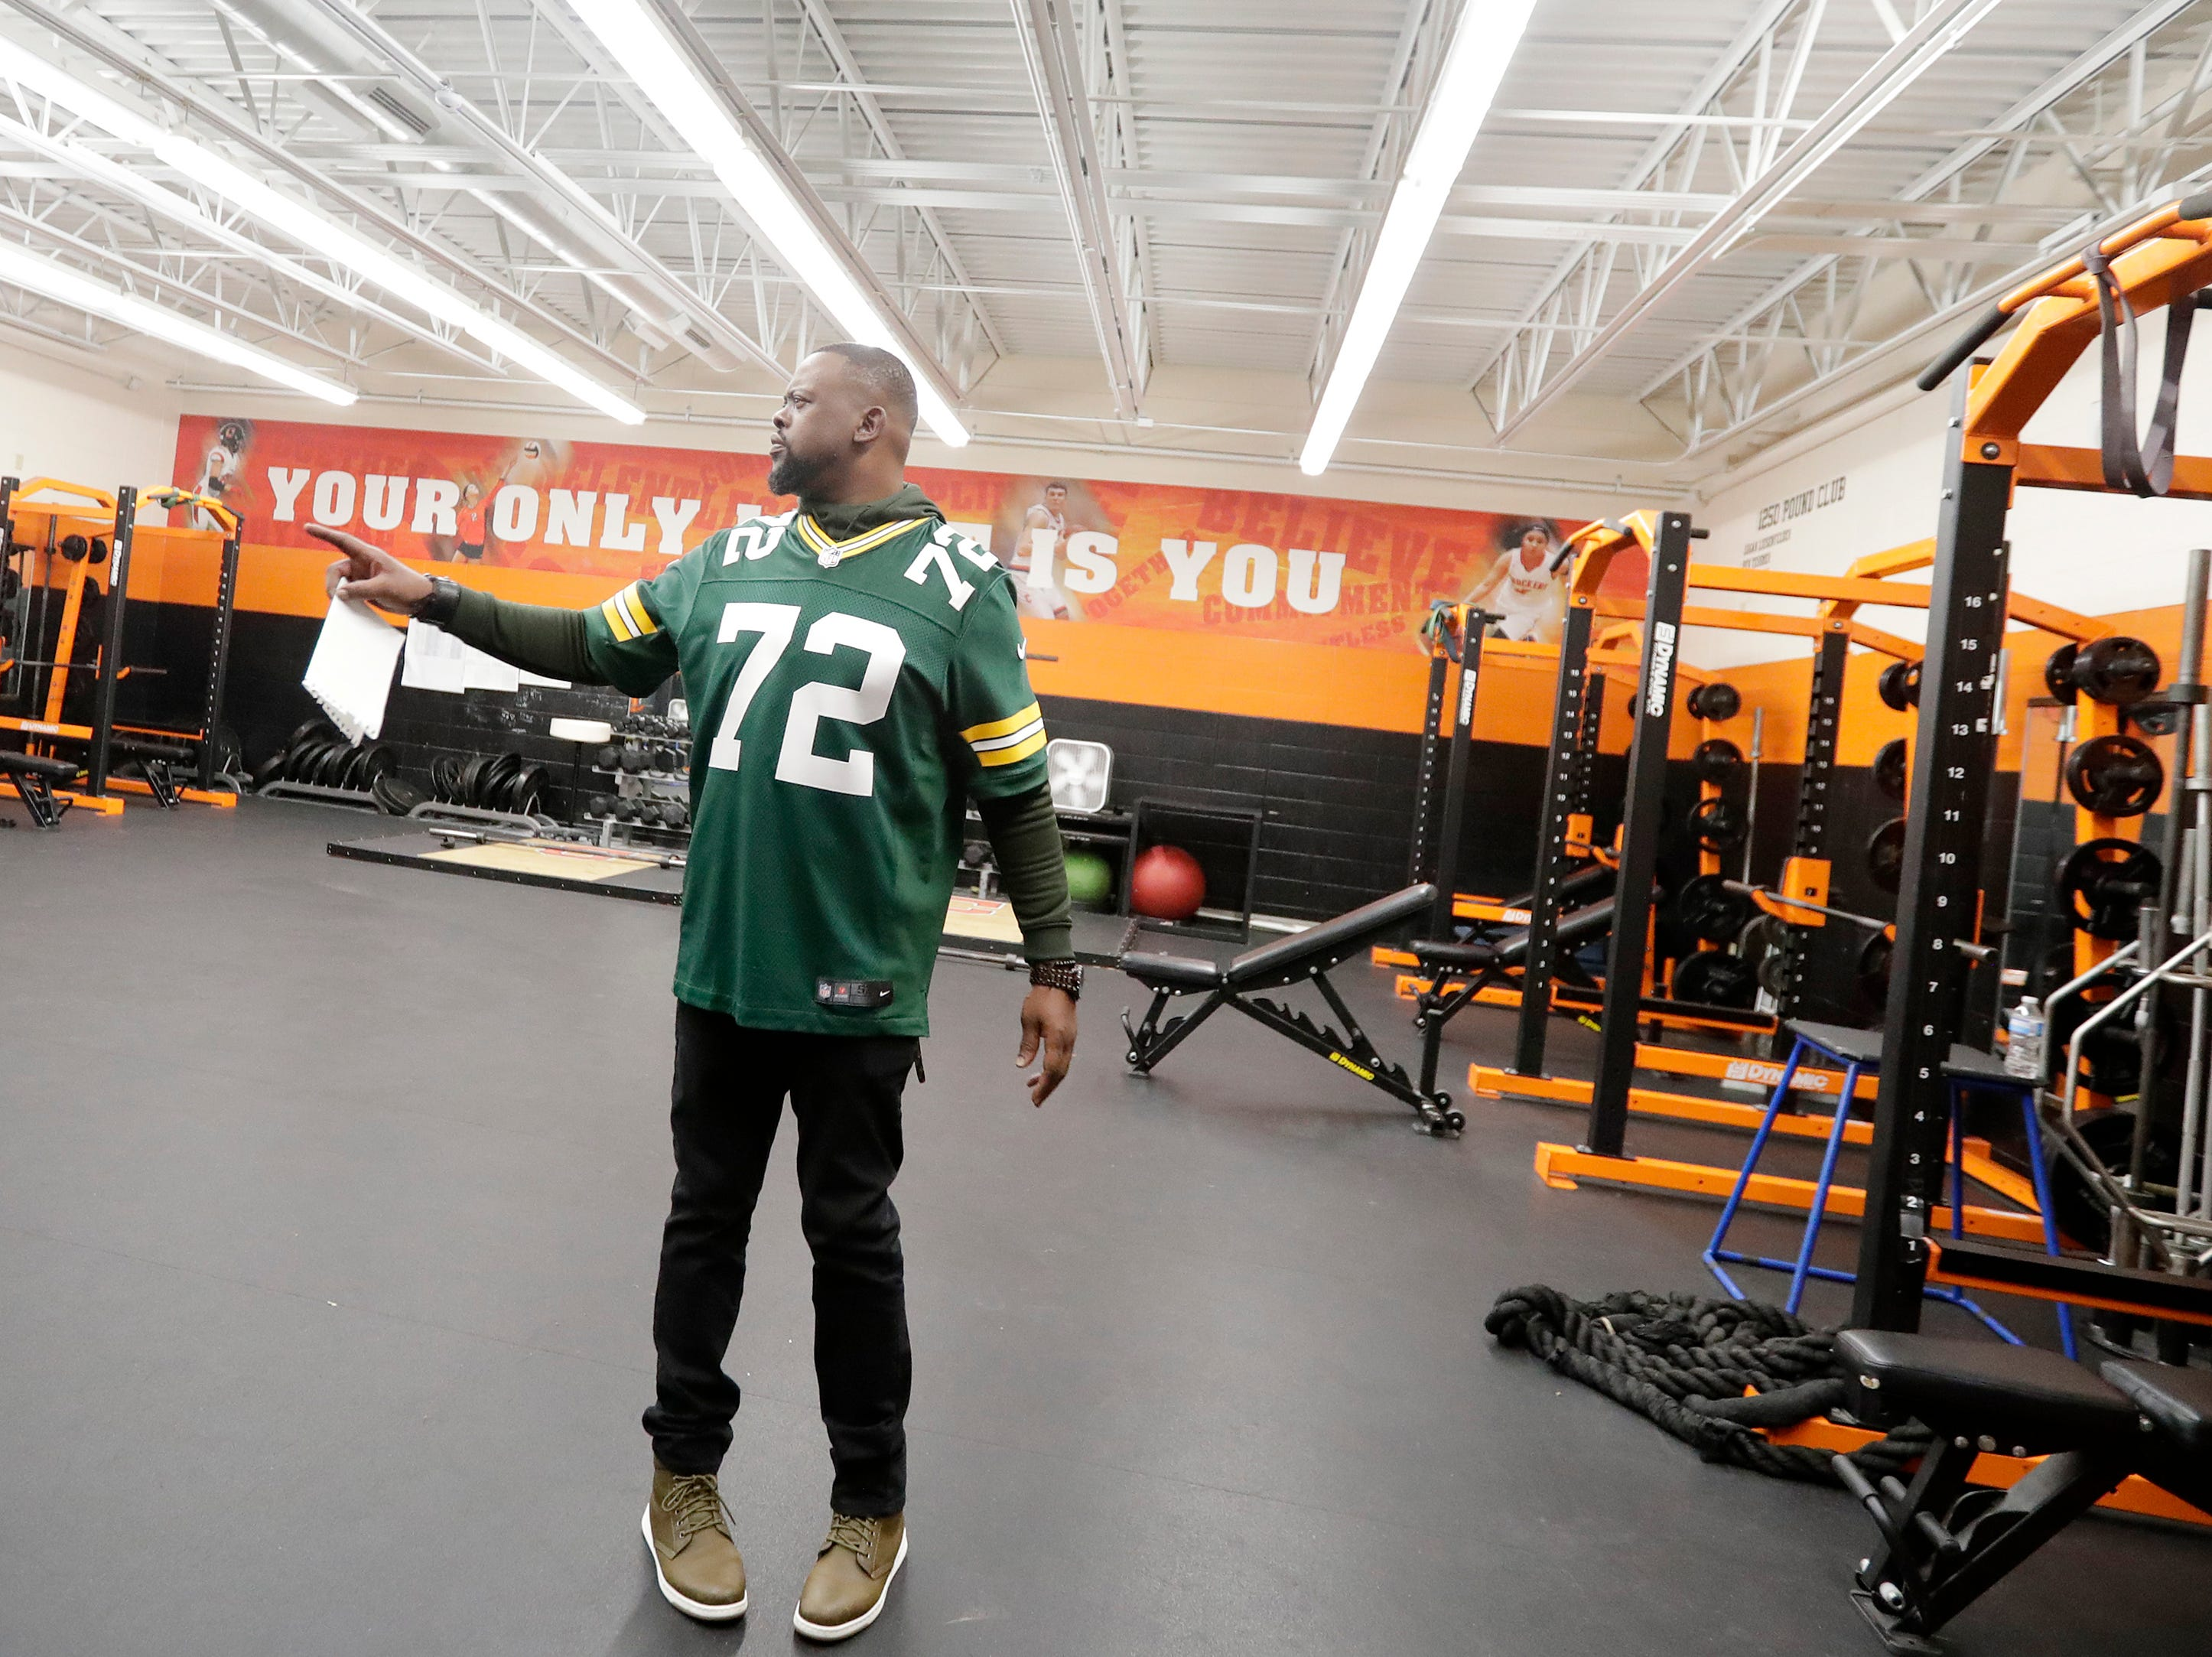 Former Green Bay Packers player Earl Dotson checks out the weight room during a stop on the Packers Tailgate Tour at Clintonville High School on Tuesday, April 9, 2019 in Clintonville, Wis.